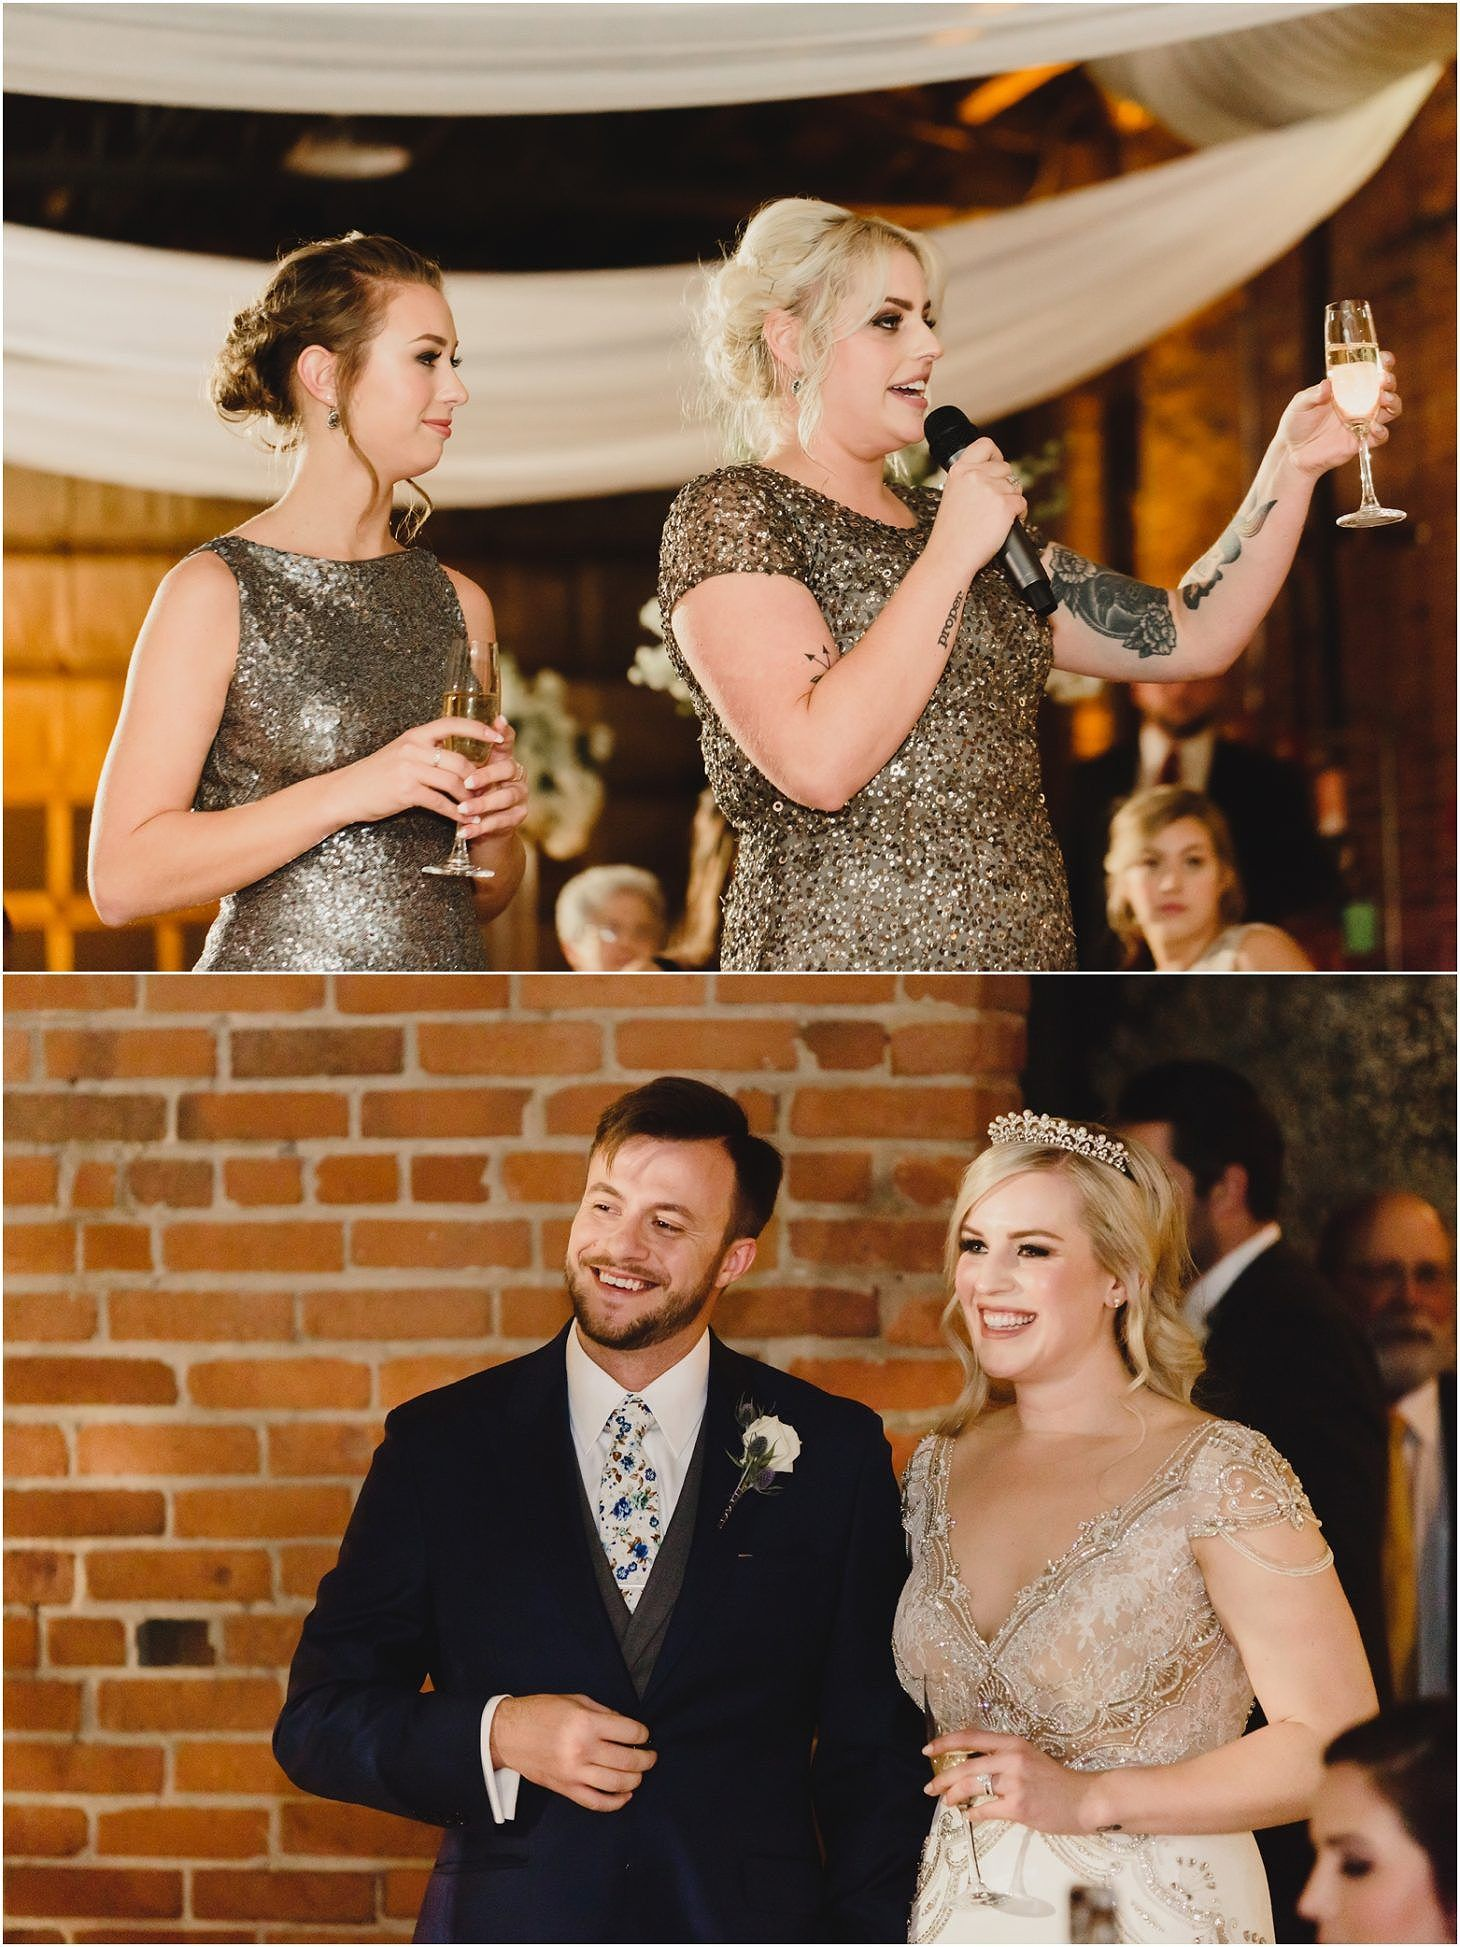 toasts | Standard Knoxville | JoPhoto | The Standard: Knoxville ...